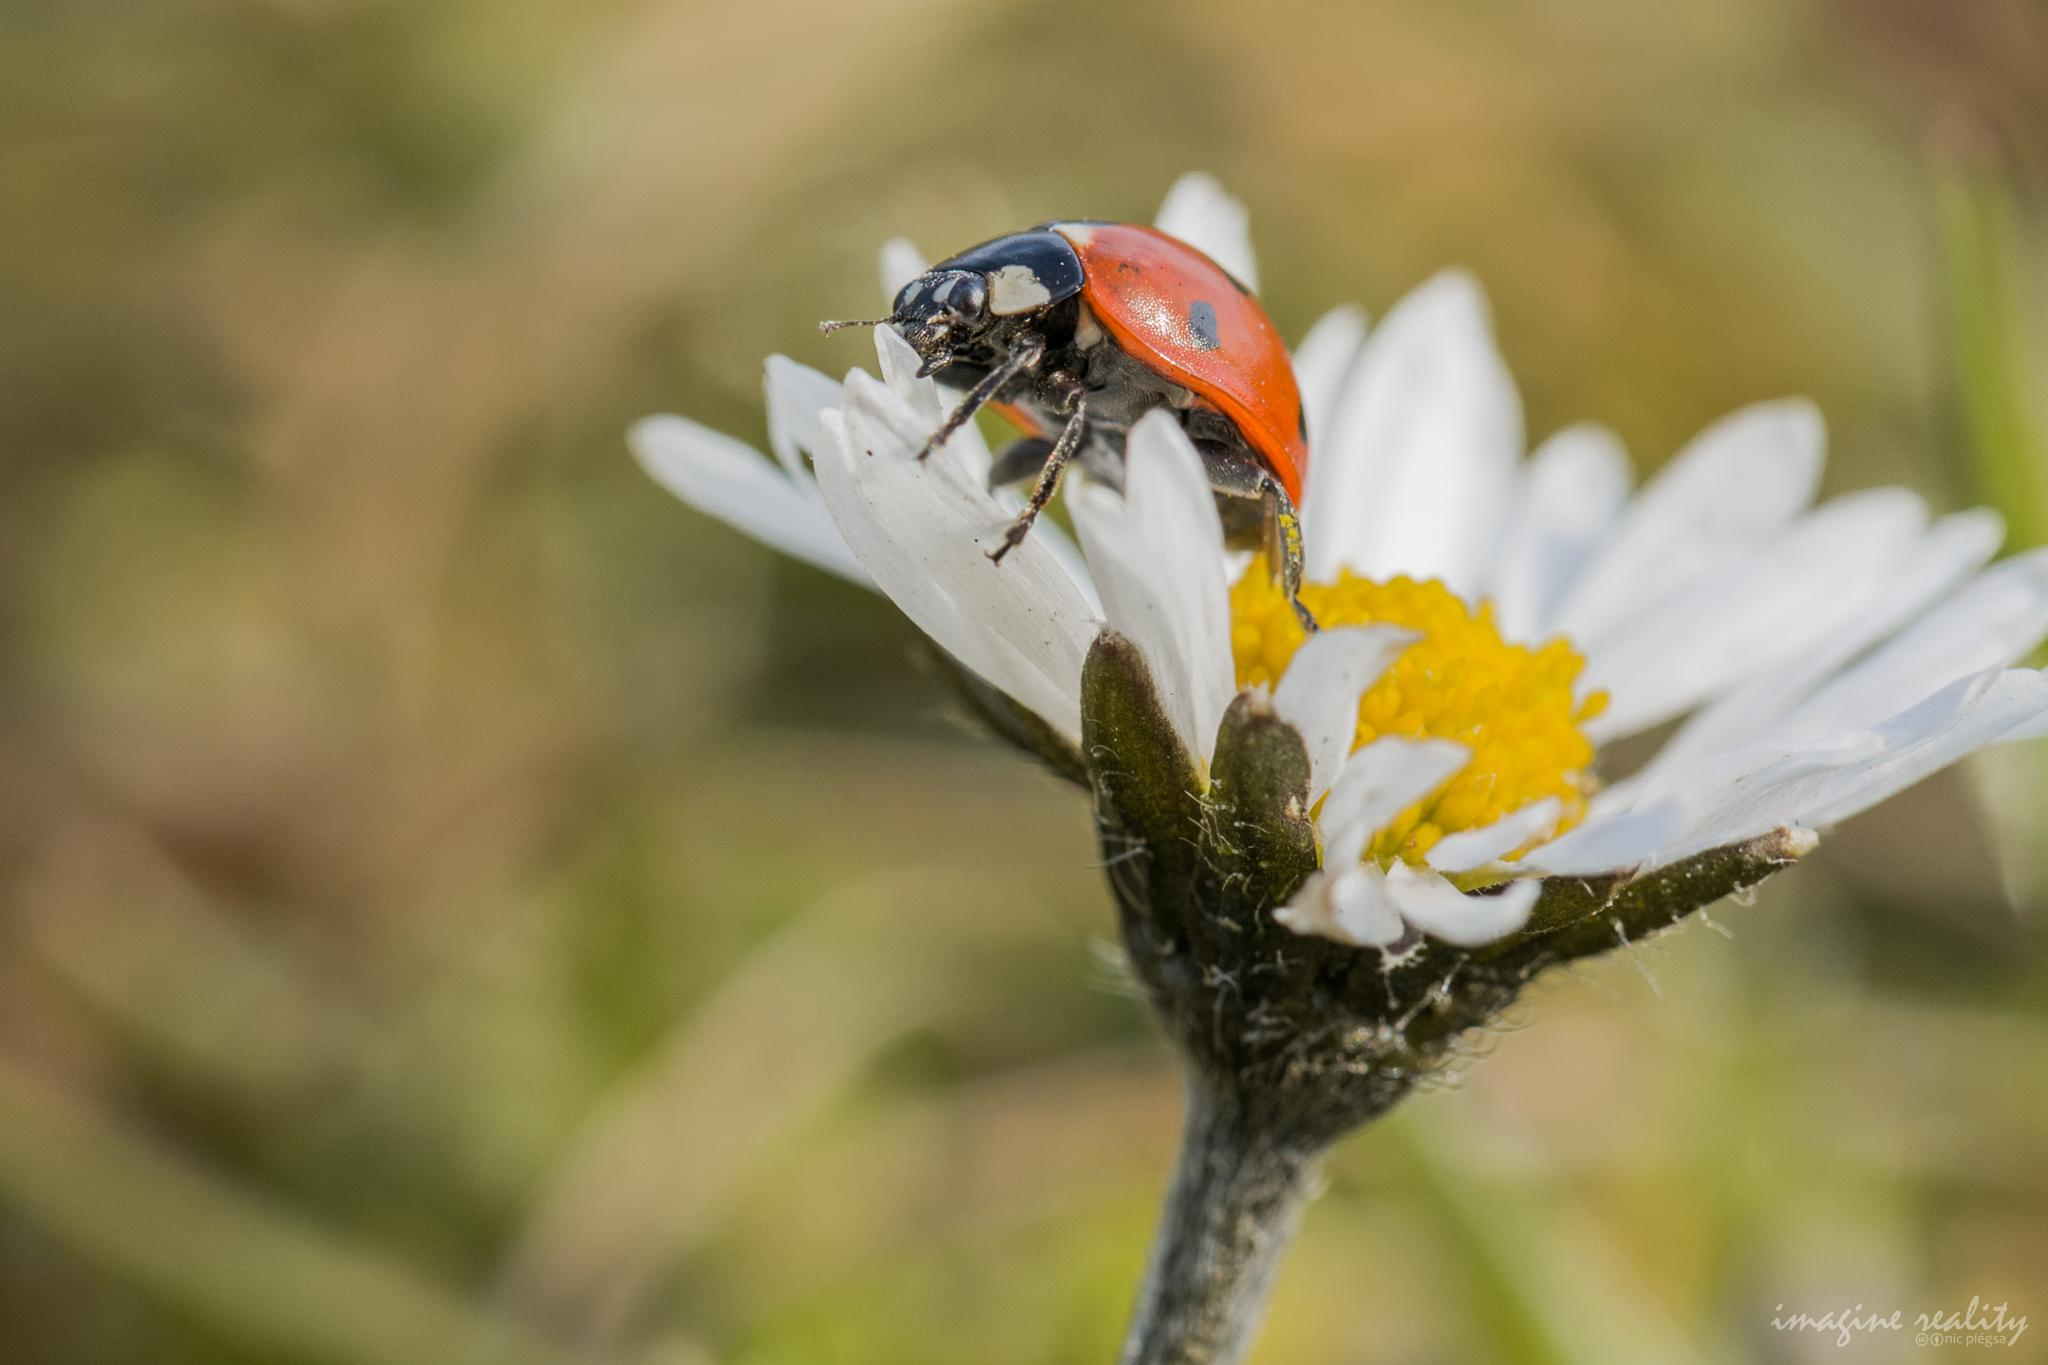 Ladybird on Lawn Daisy by Nic Piégsa